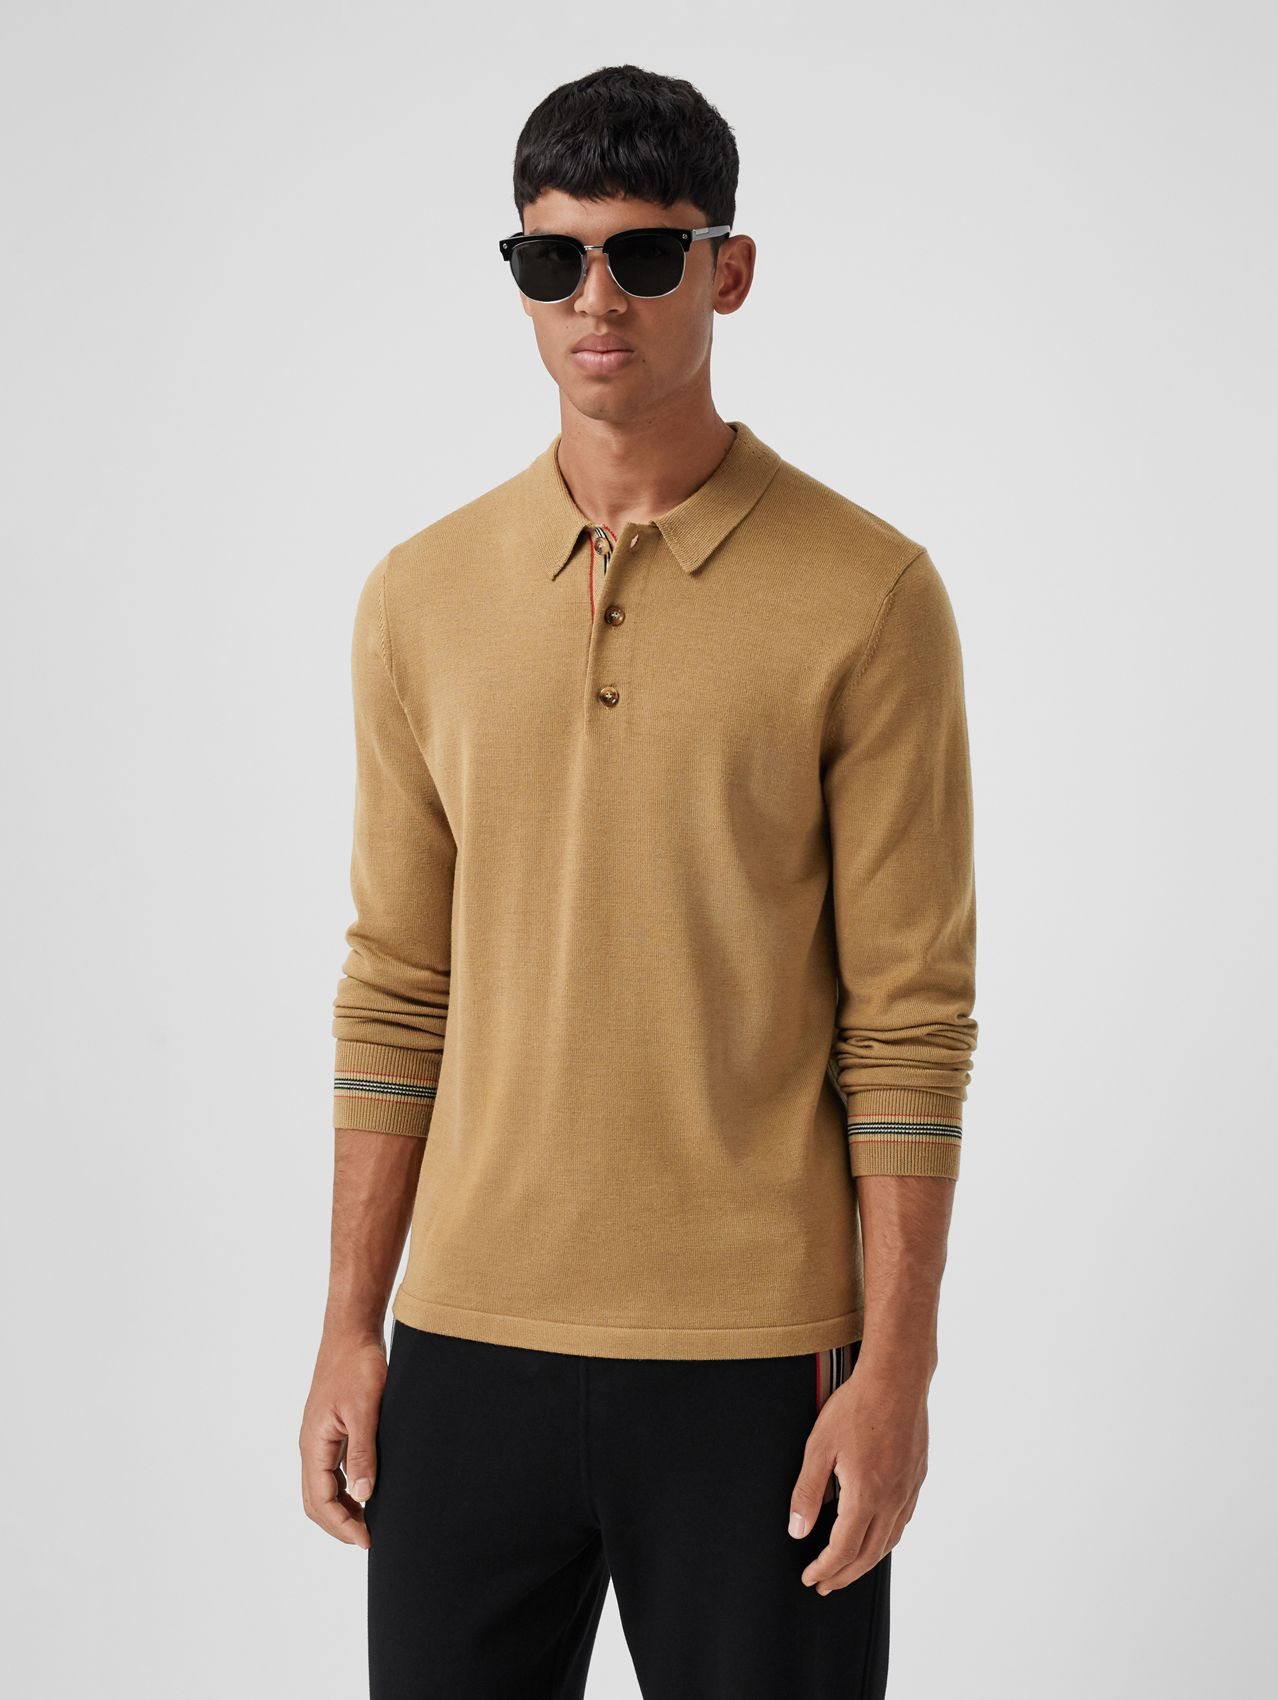 Long-sleeve Icon Stripe Detail Merino Wool Polo Shirt in Camel